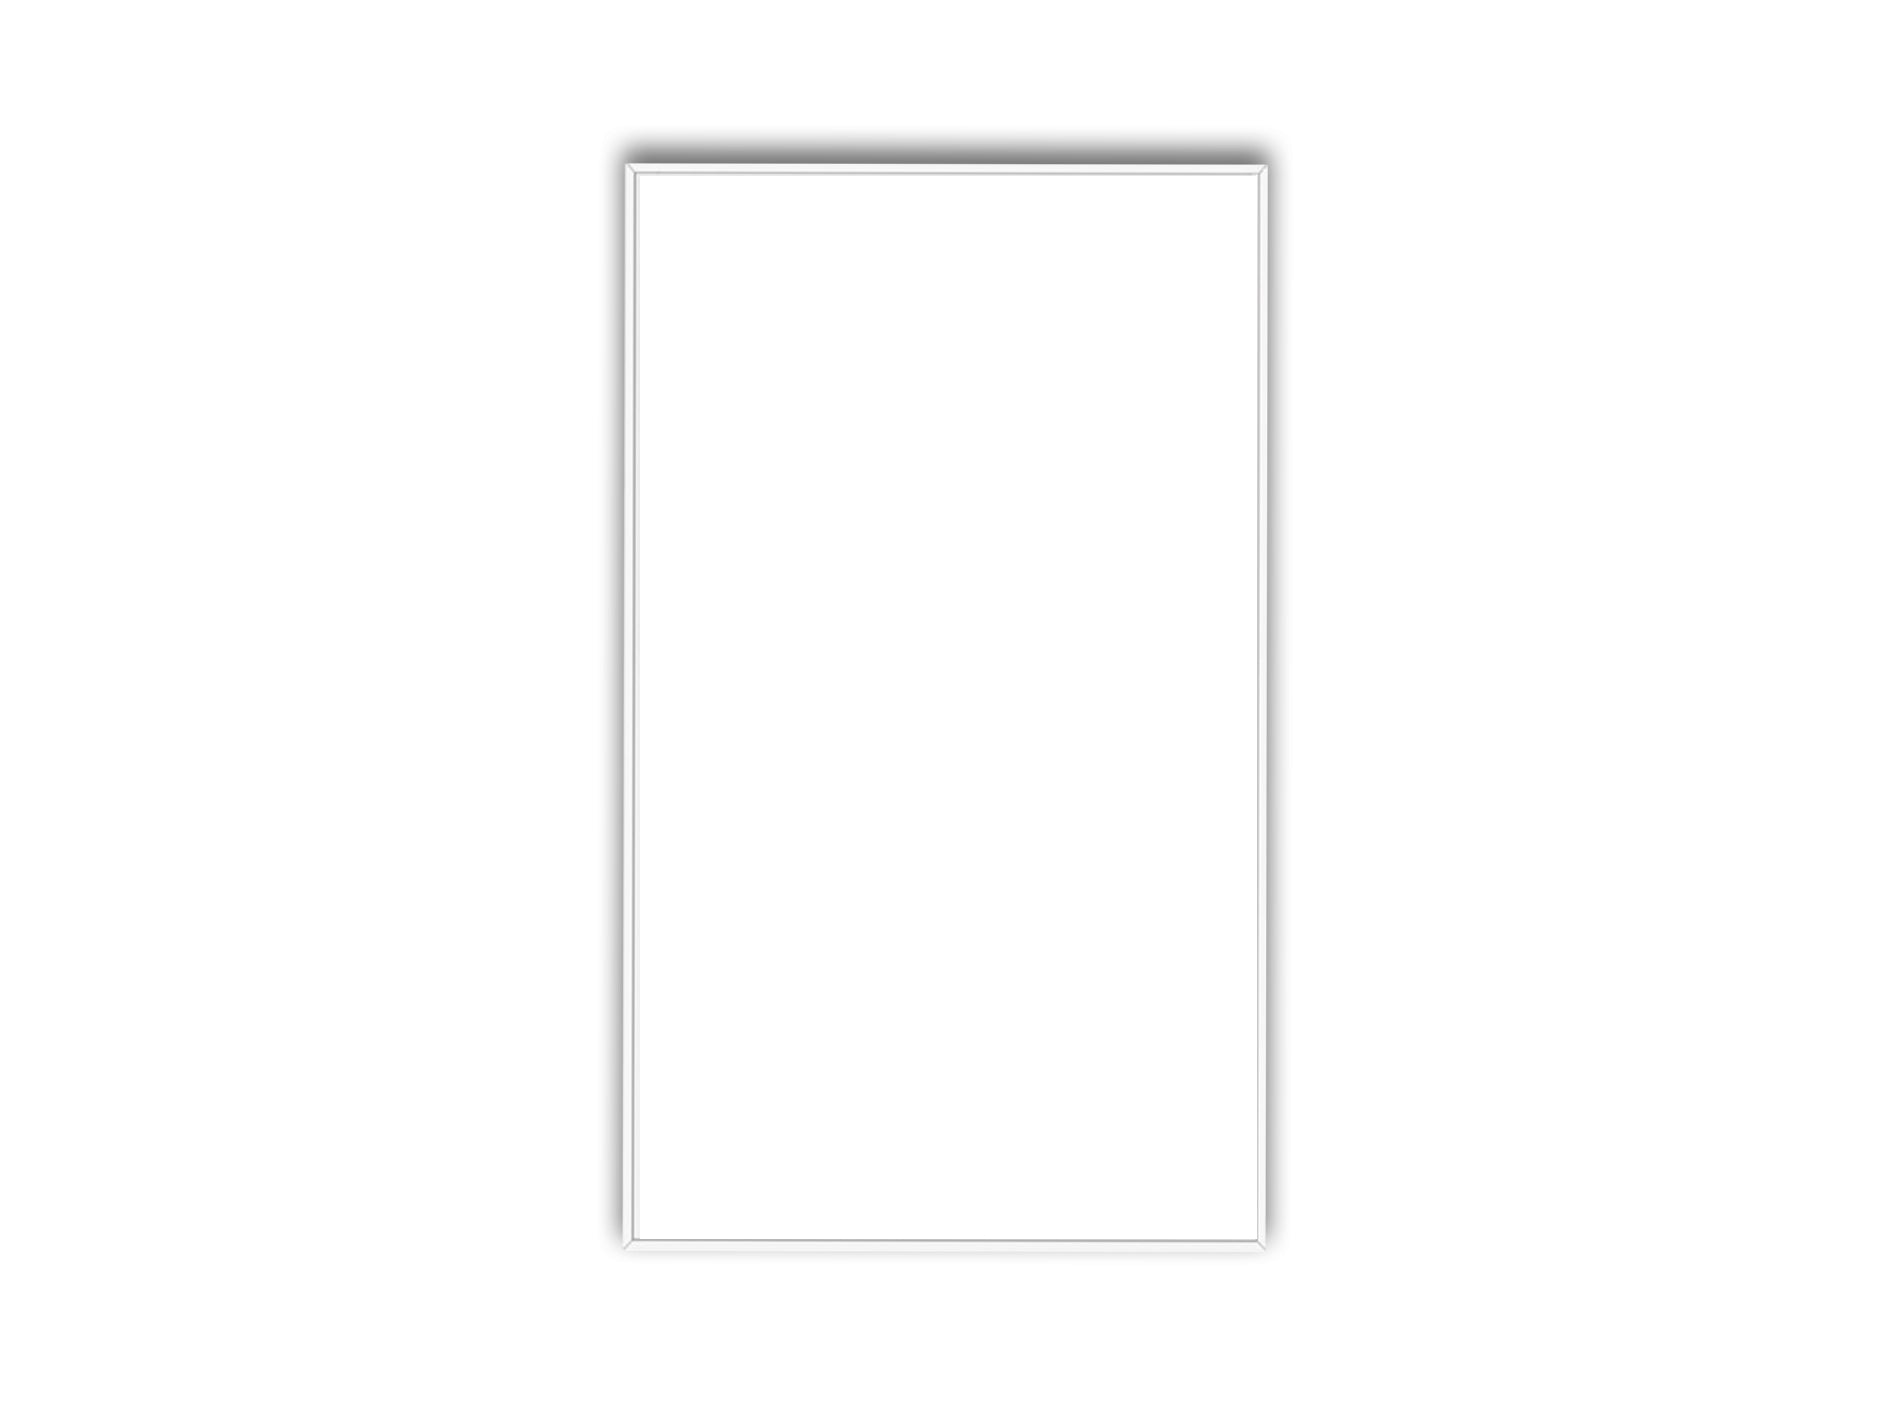 Advantage Series Aluminum Heating Panels (wall & ceiling mounted) - Price Includes Packaging & Delivery